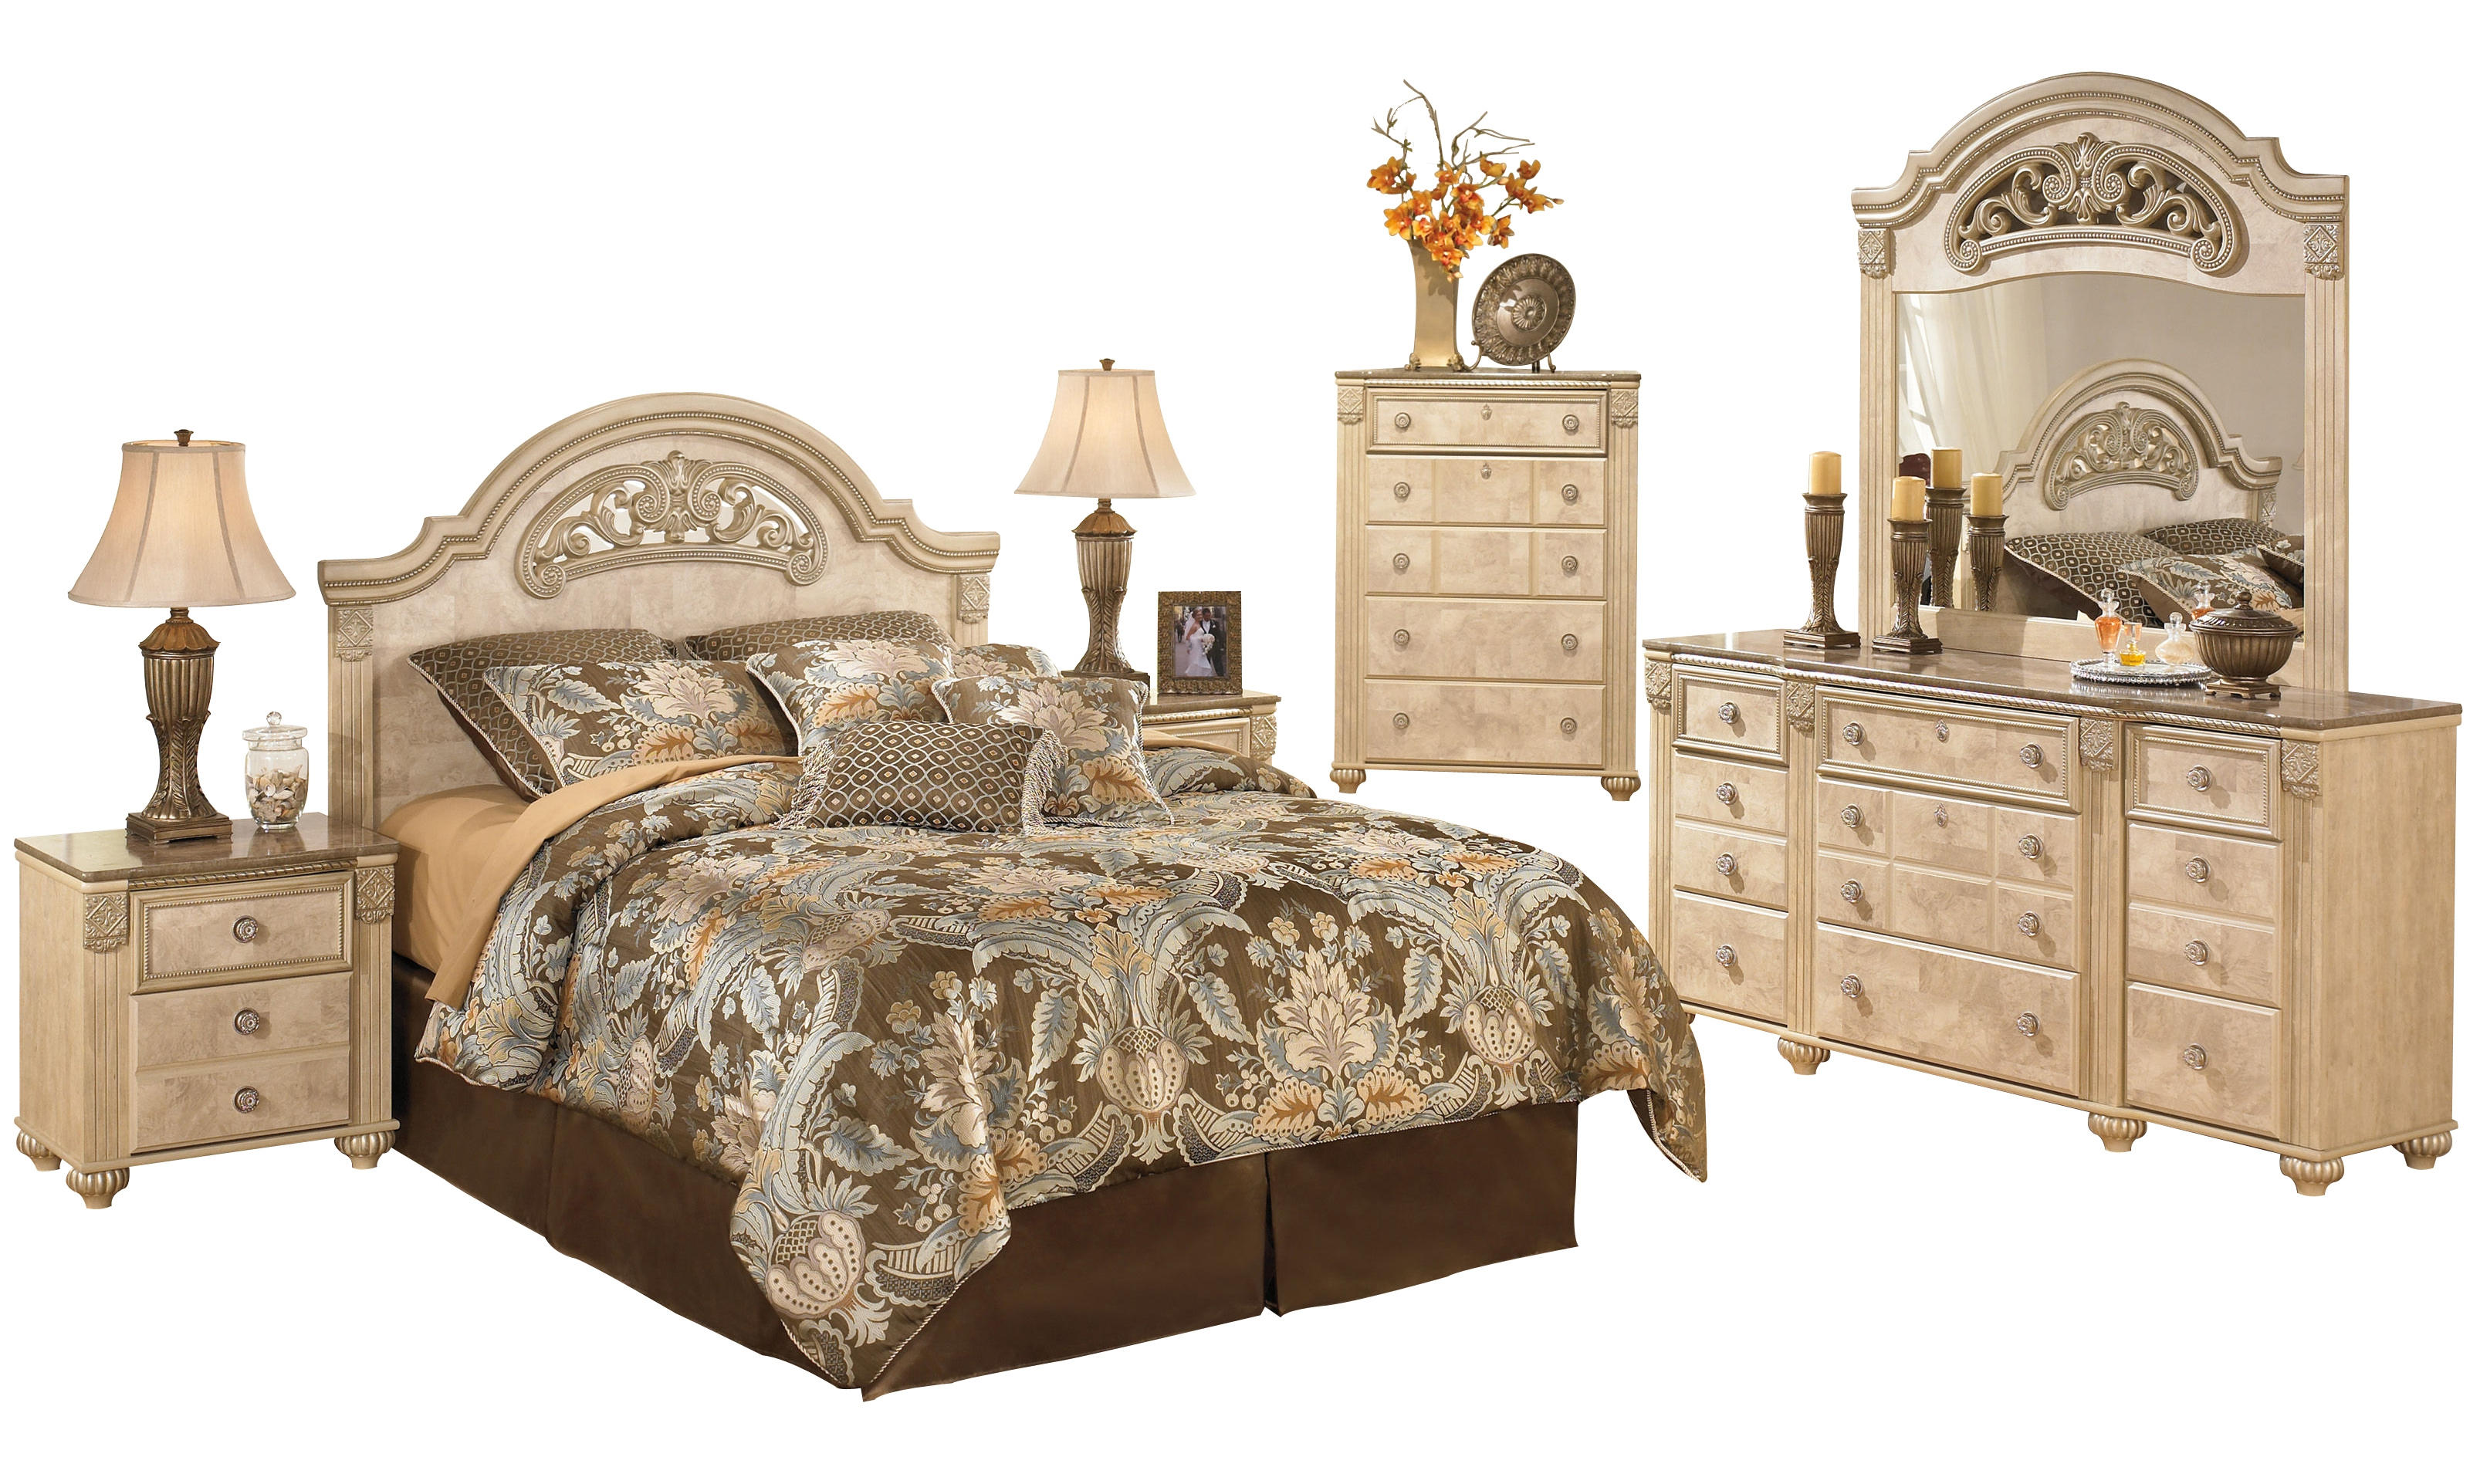 Saveaha Light Brown Wood Marble Master Bedroom Set The Classy Home The Classy Home Best